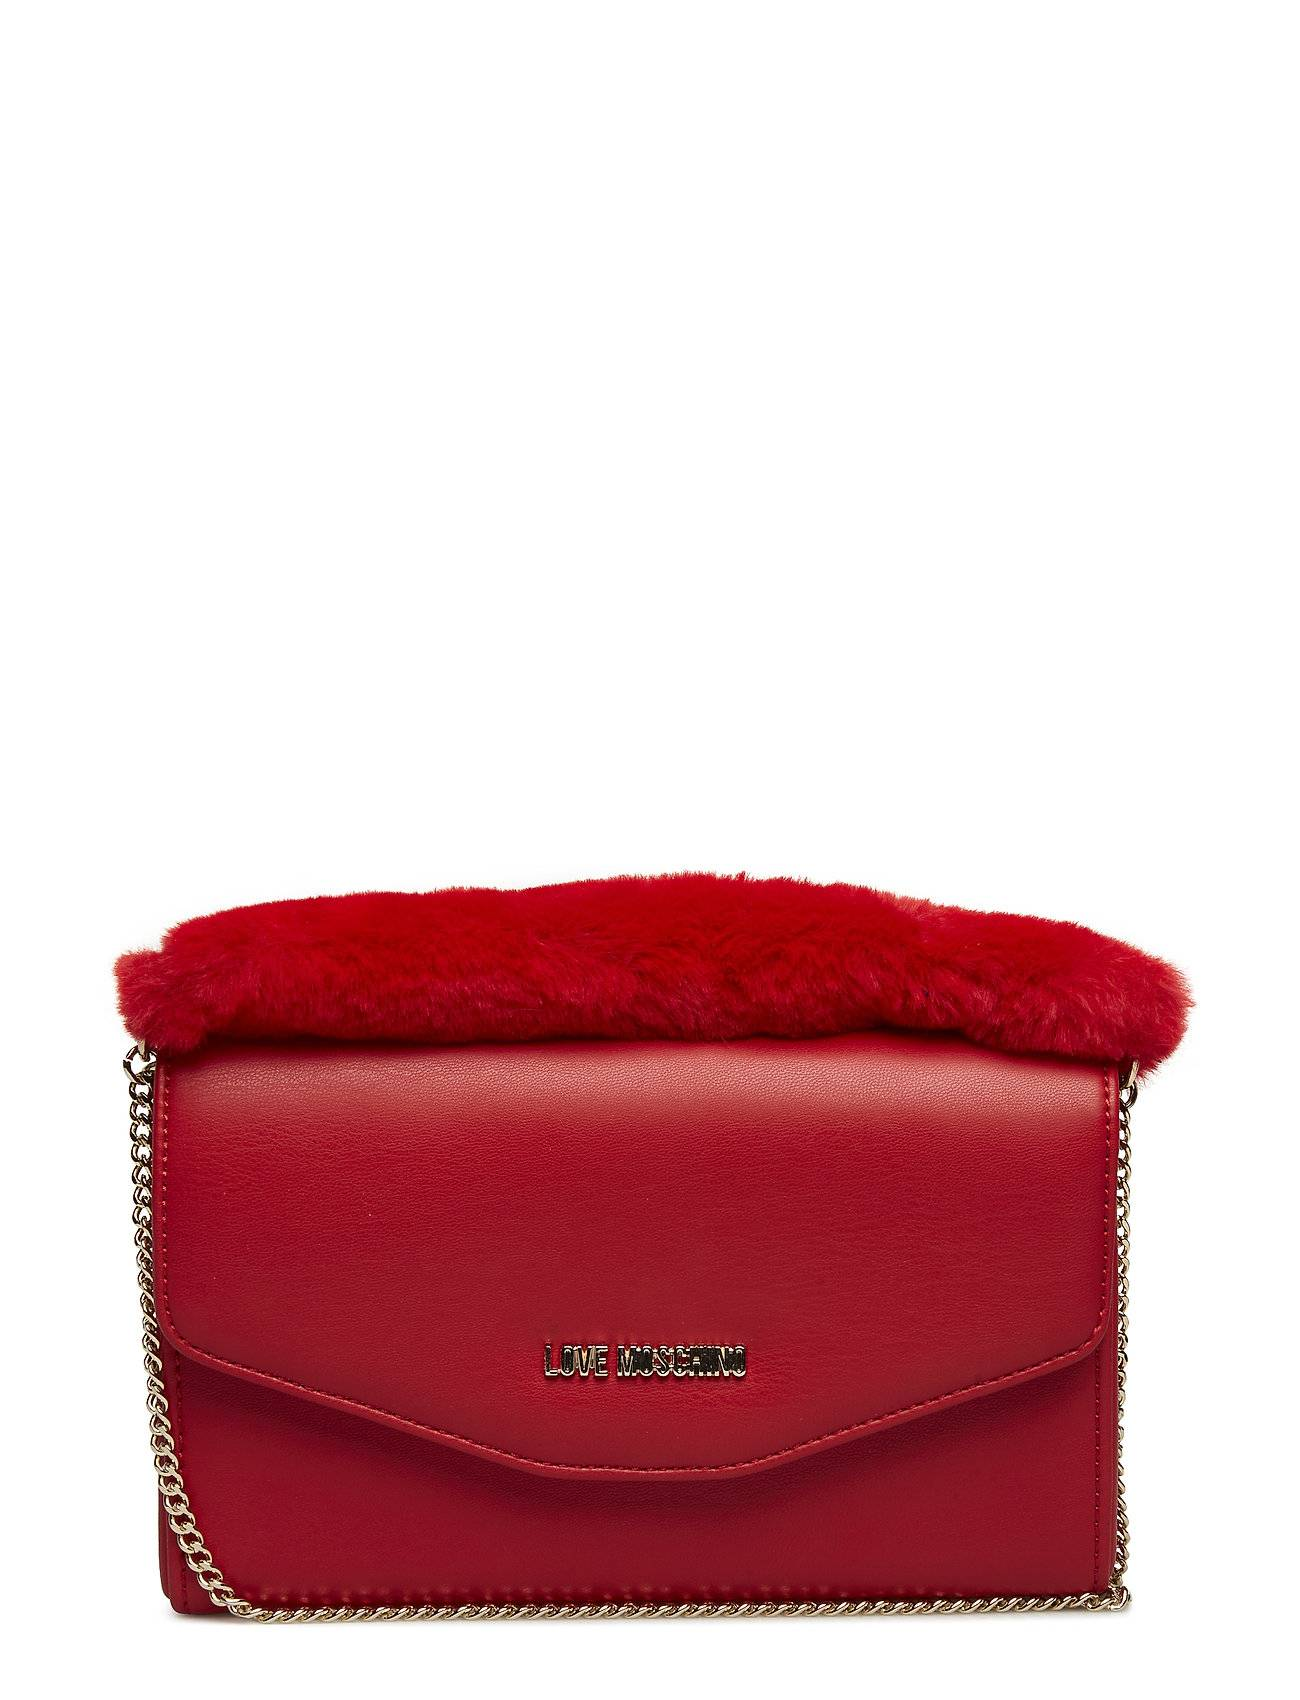 Love Moschino Bags Evening Bag